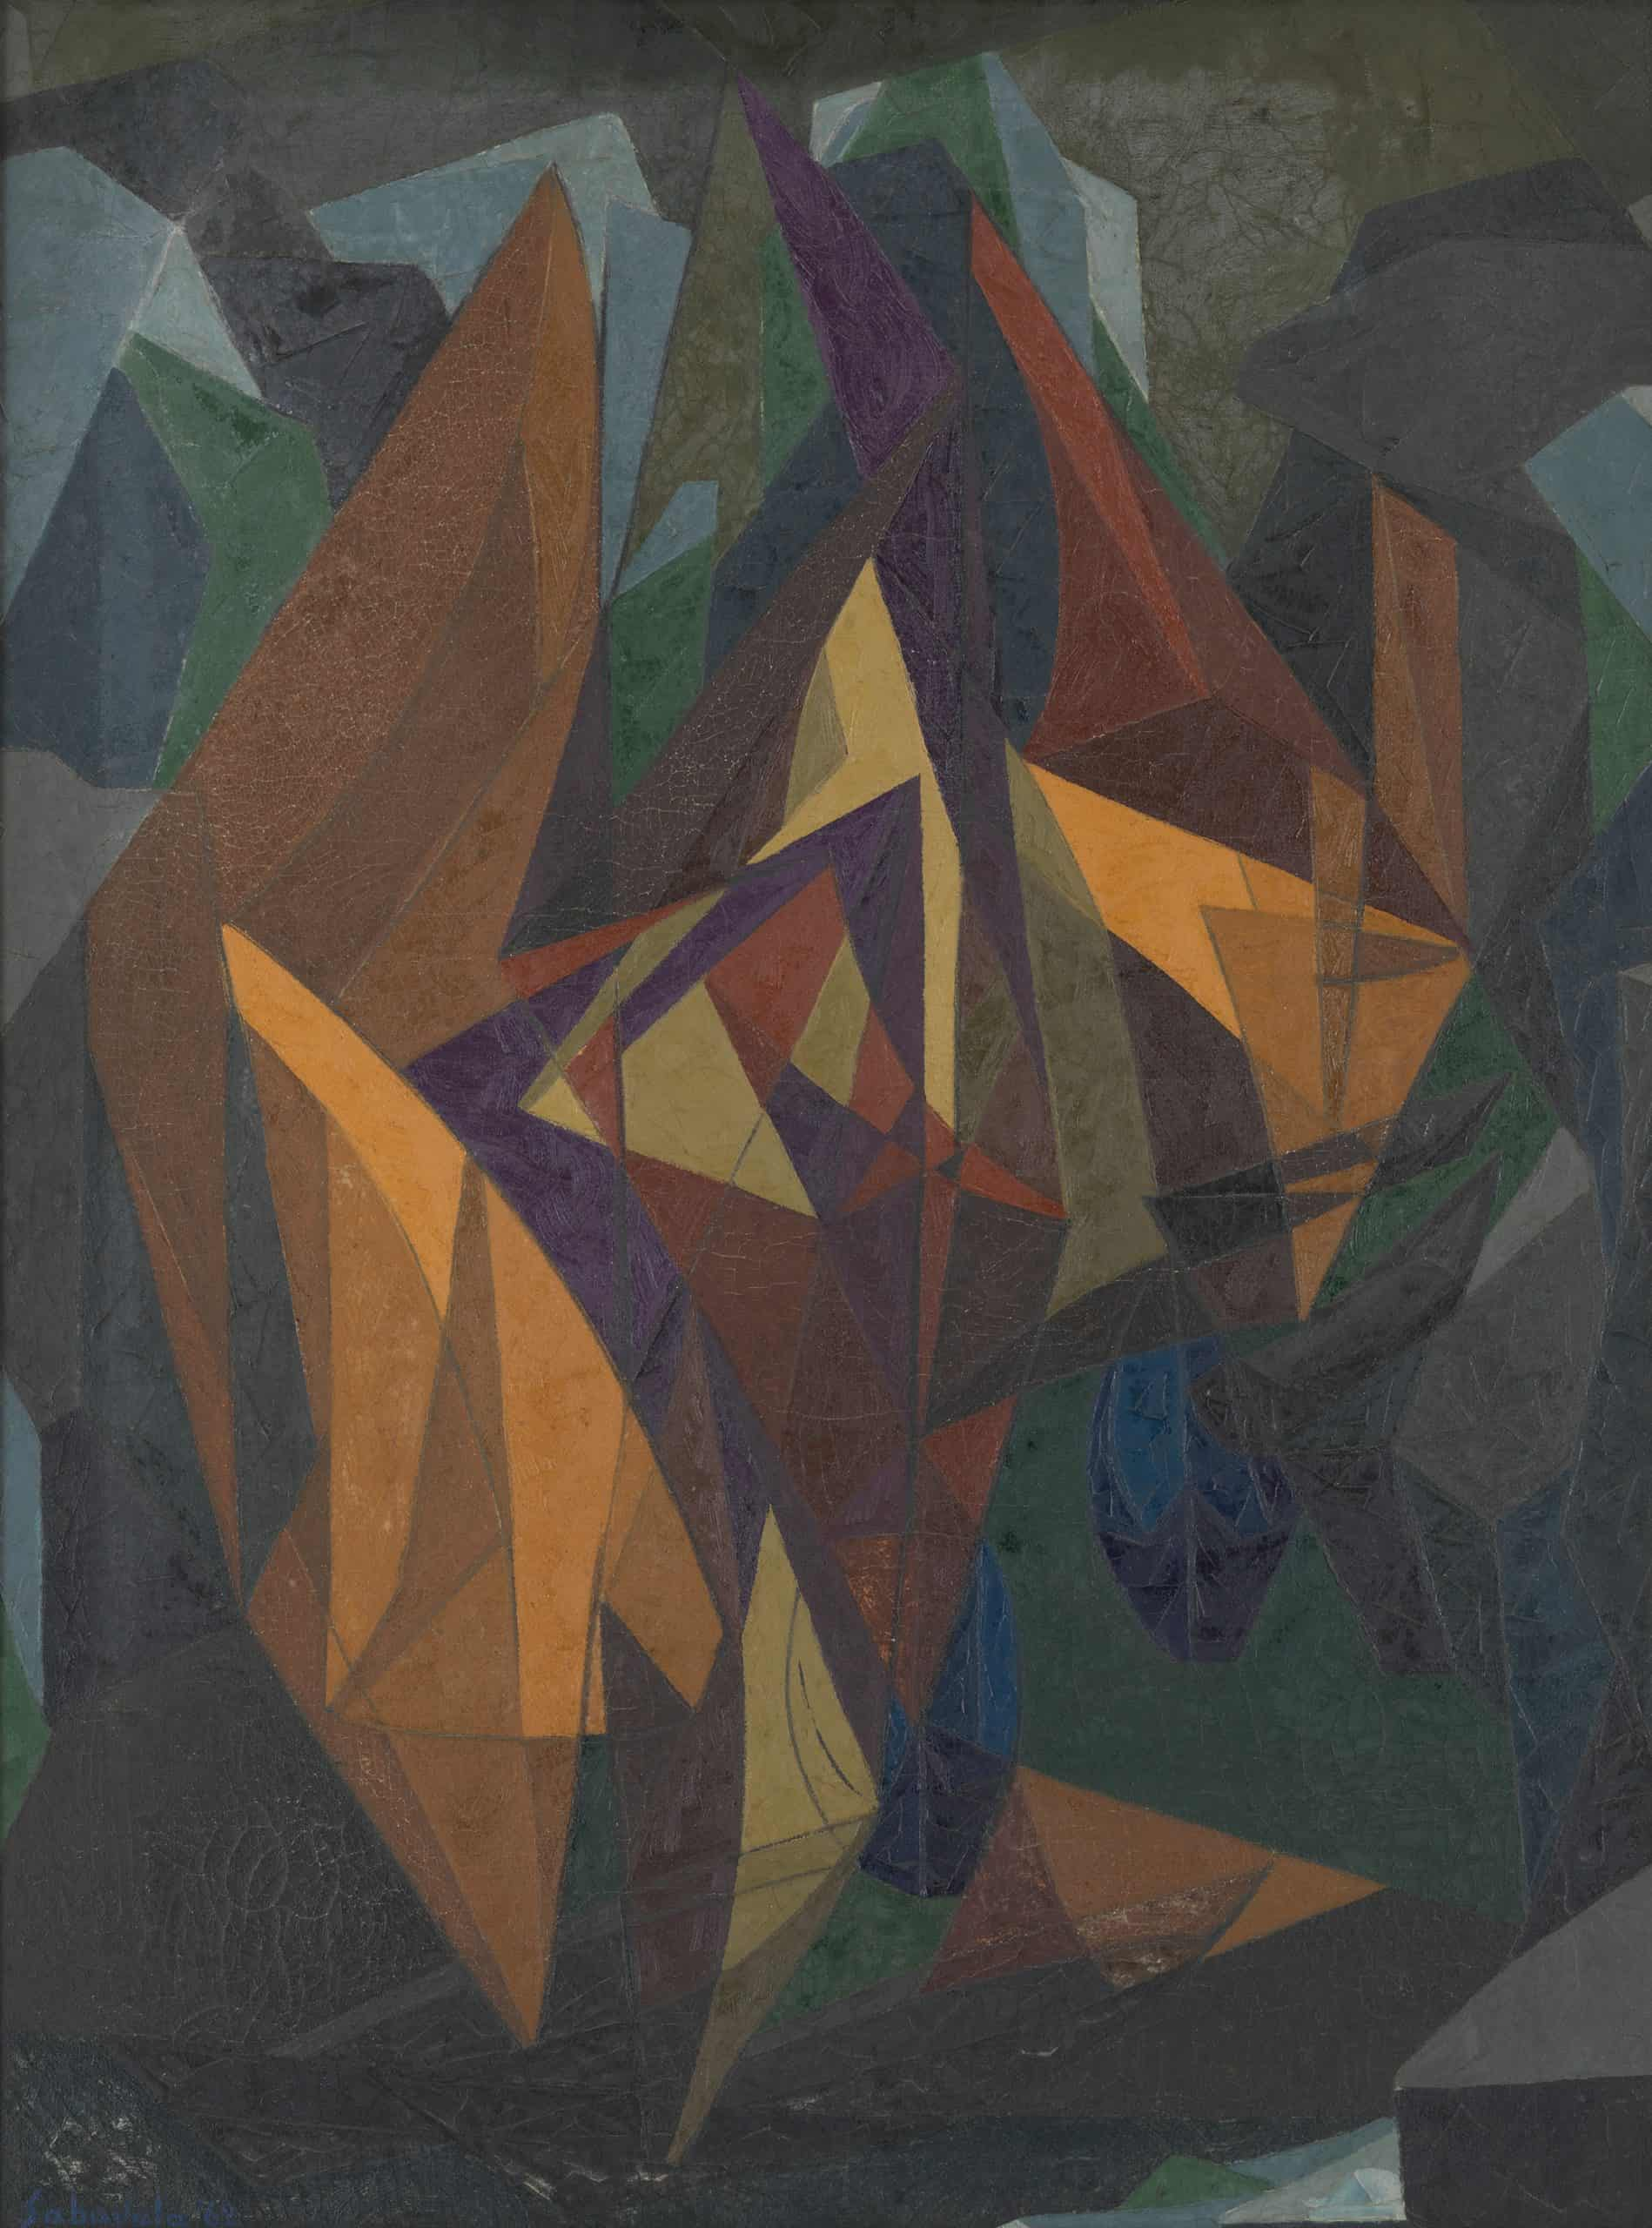 Lot 12 - Jehangir SabavalaGÇÖs Down To A Sunless Sea, 1962, with a pre-sale estimate of INR 50 GÇô 70 lakhs (USD 75,760 GÇô 106,065), sold at INR 1.14 crores (USD 172,727)